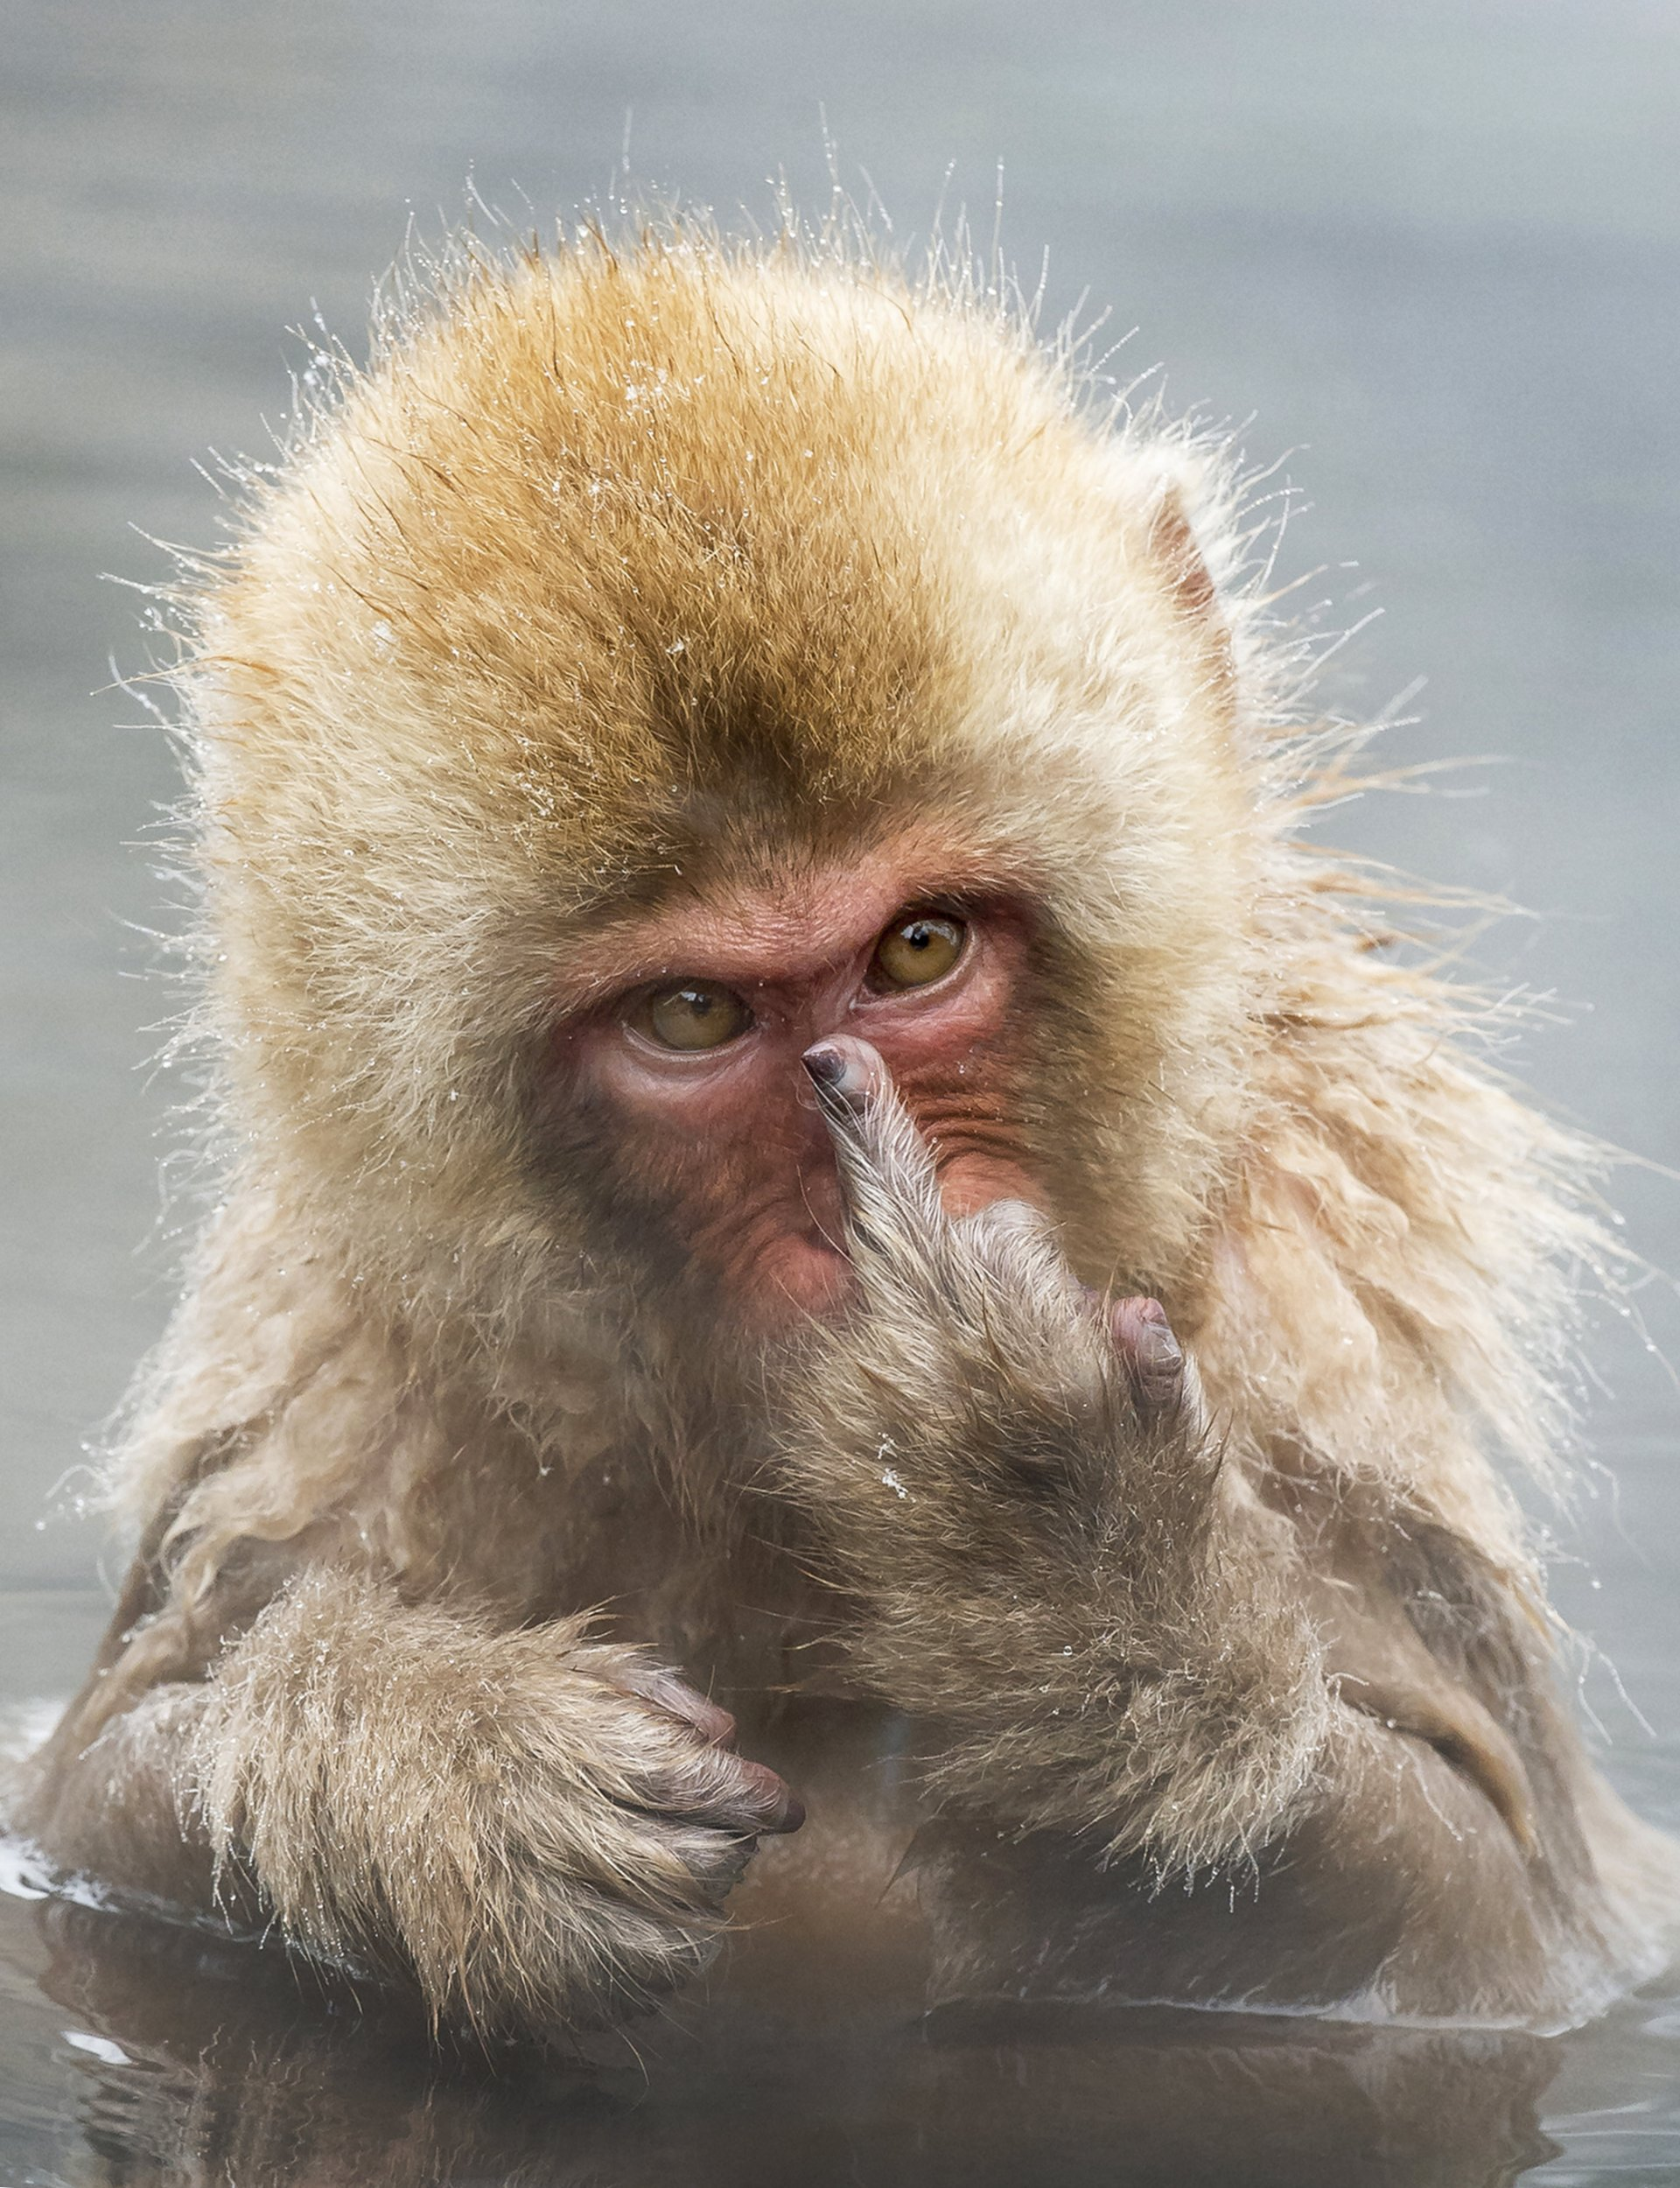 We present the most badass monkey you will ever meet